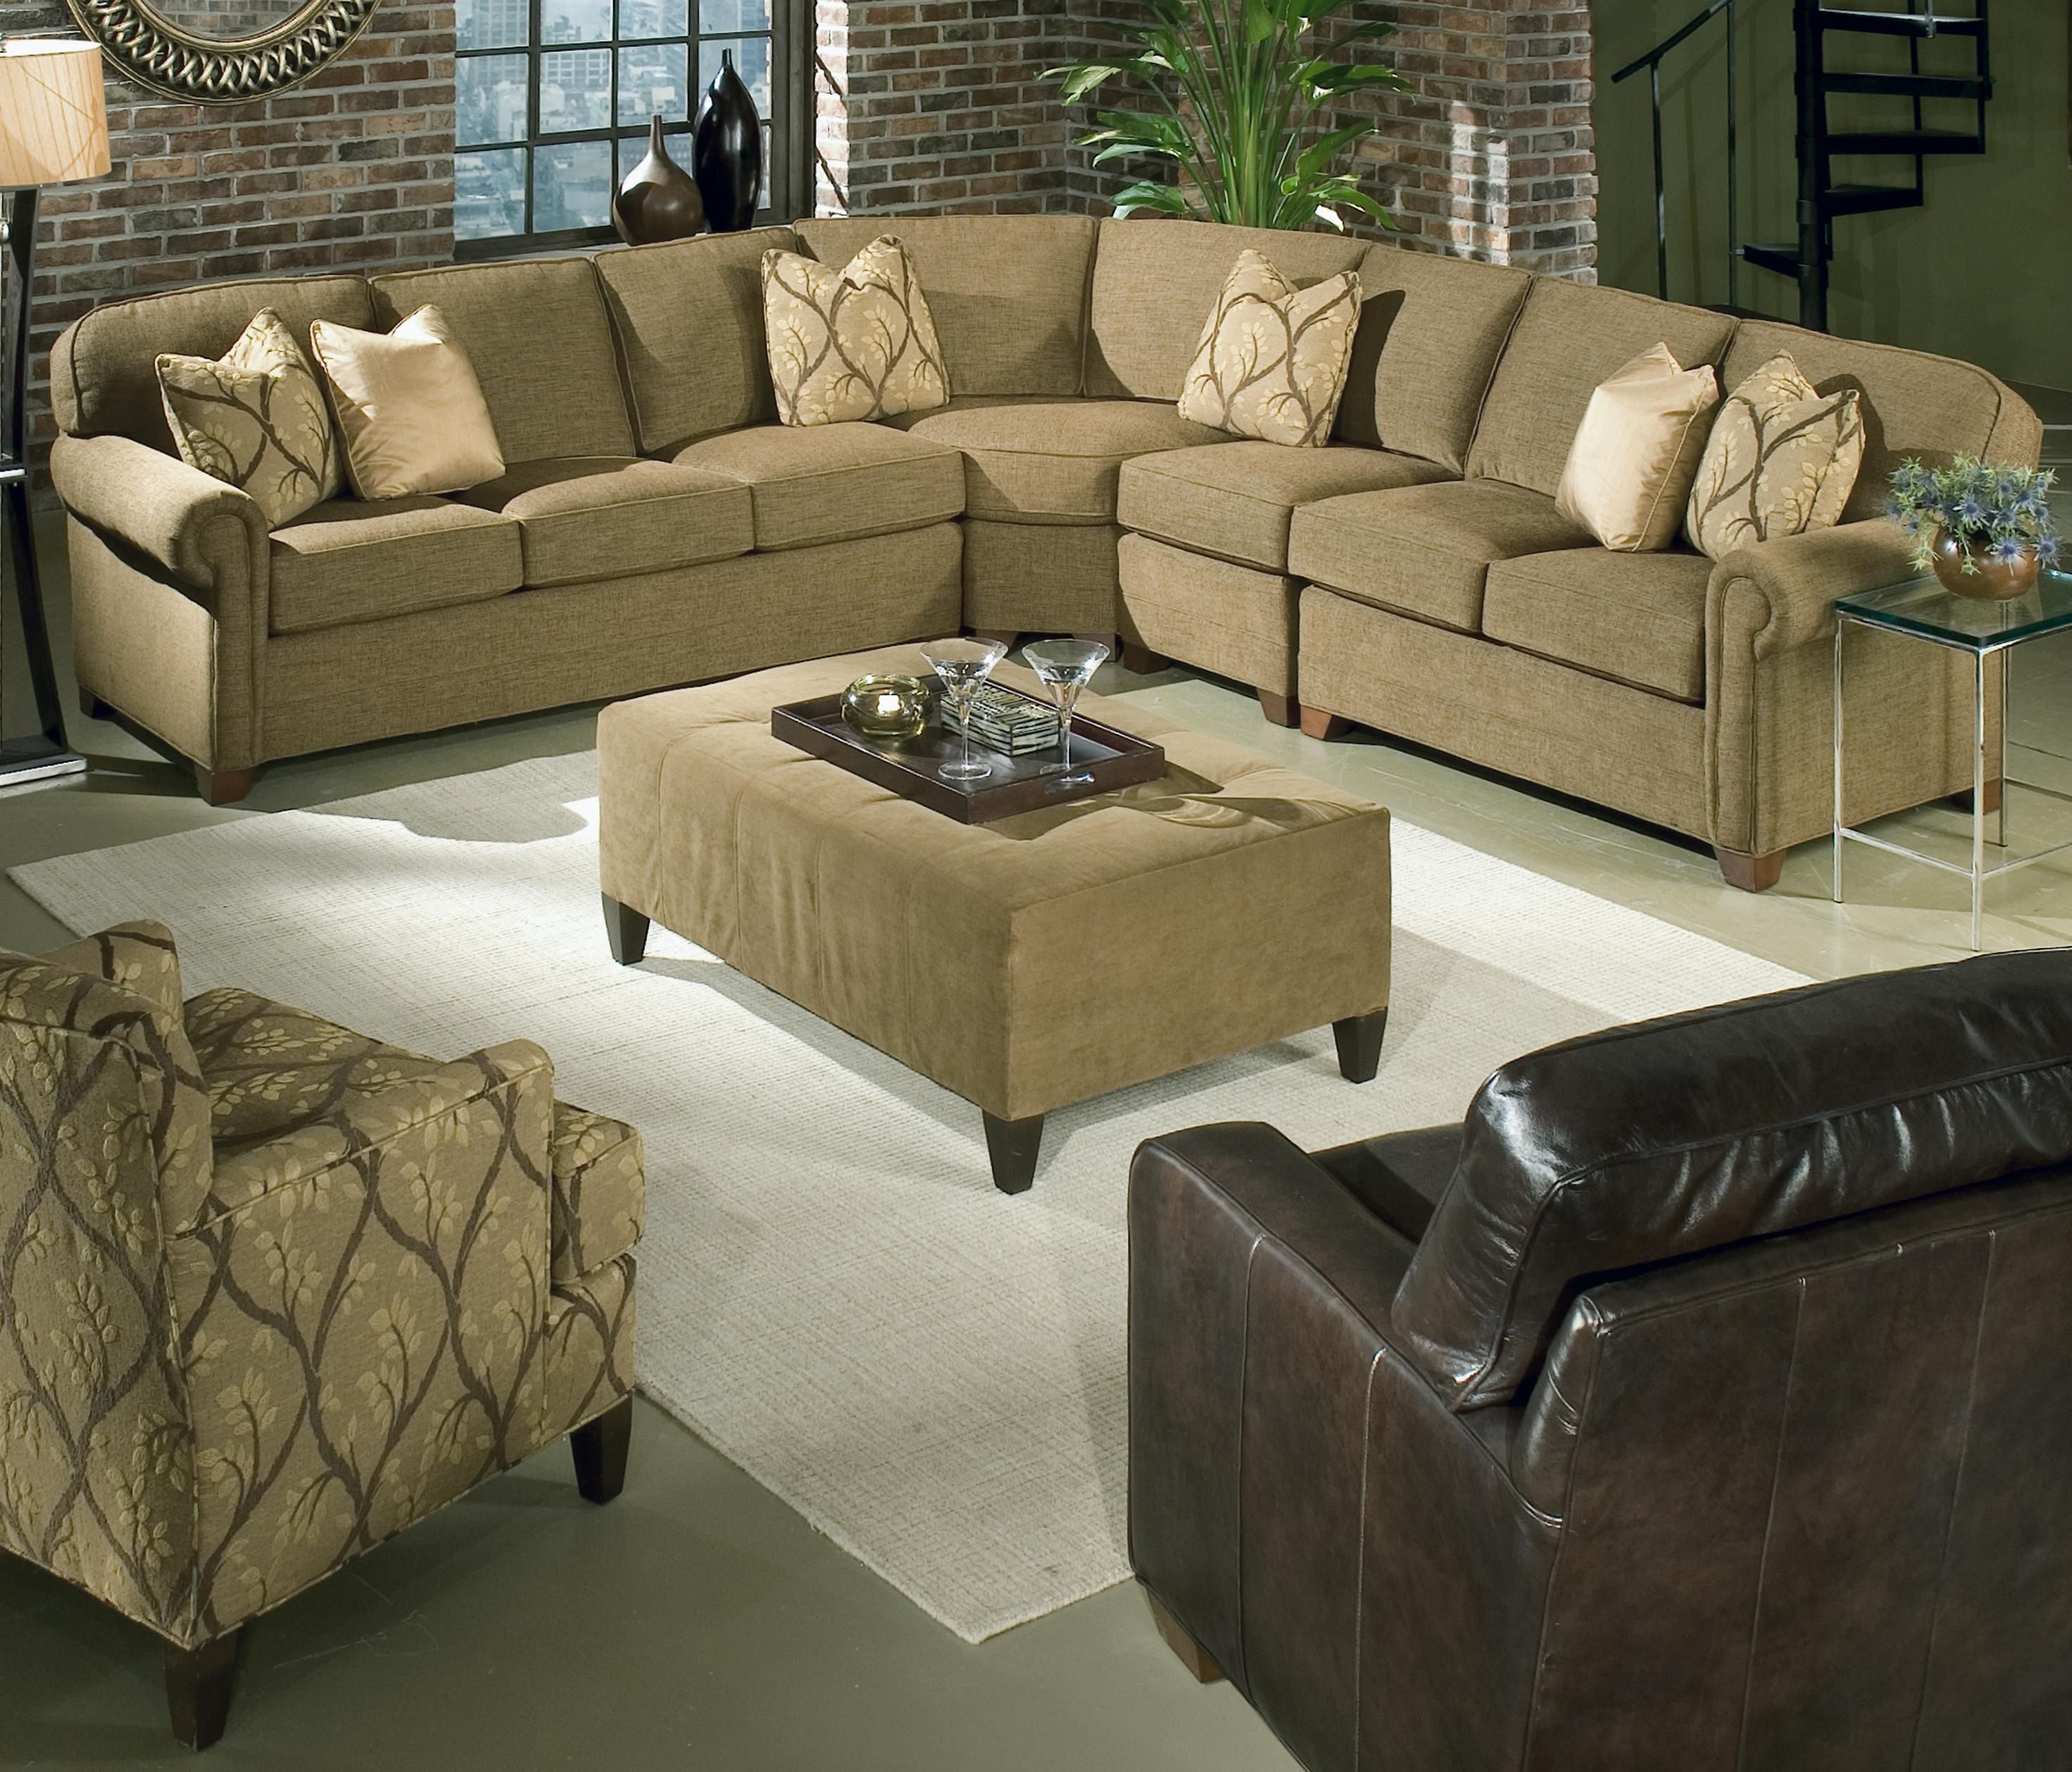 Brighton 4 Piece Sectional by King Hickory All things softball